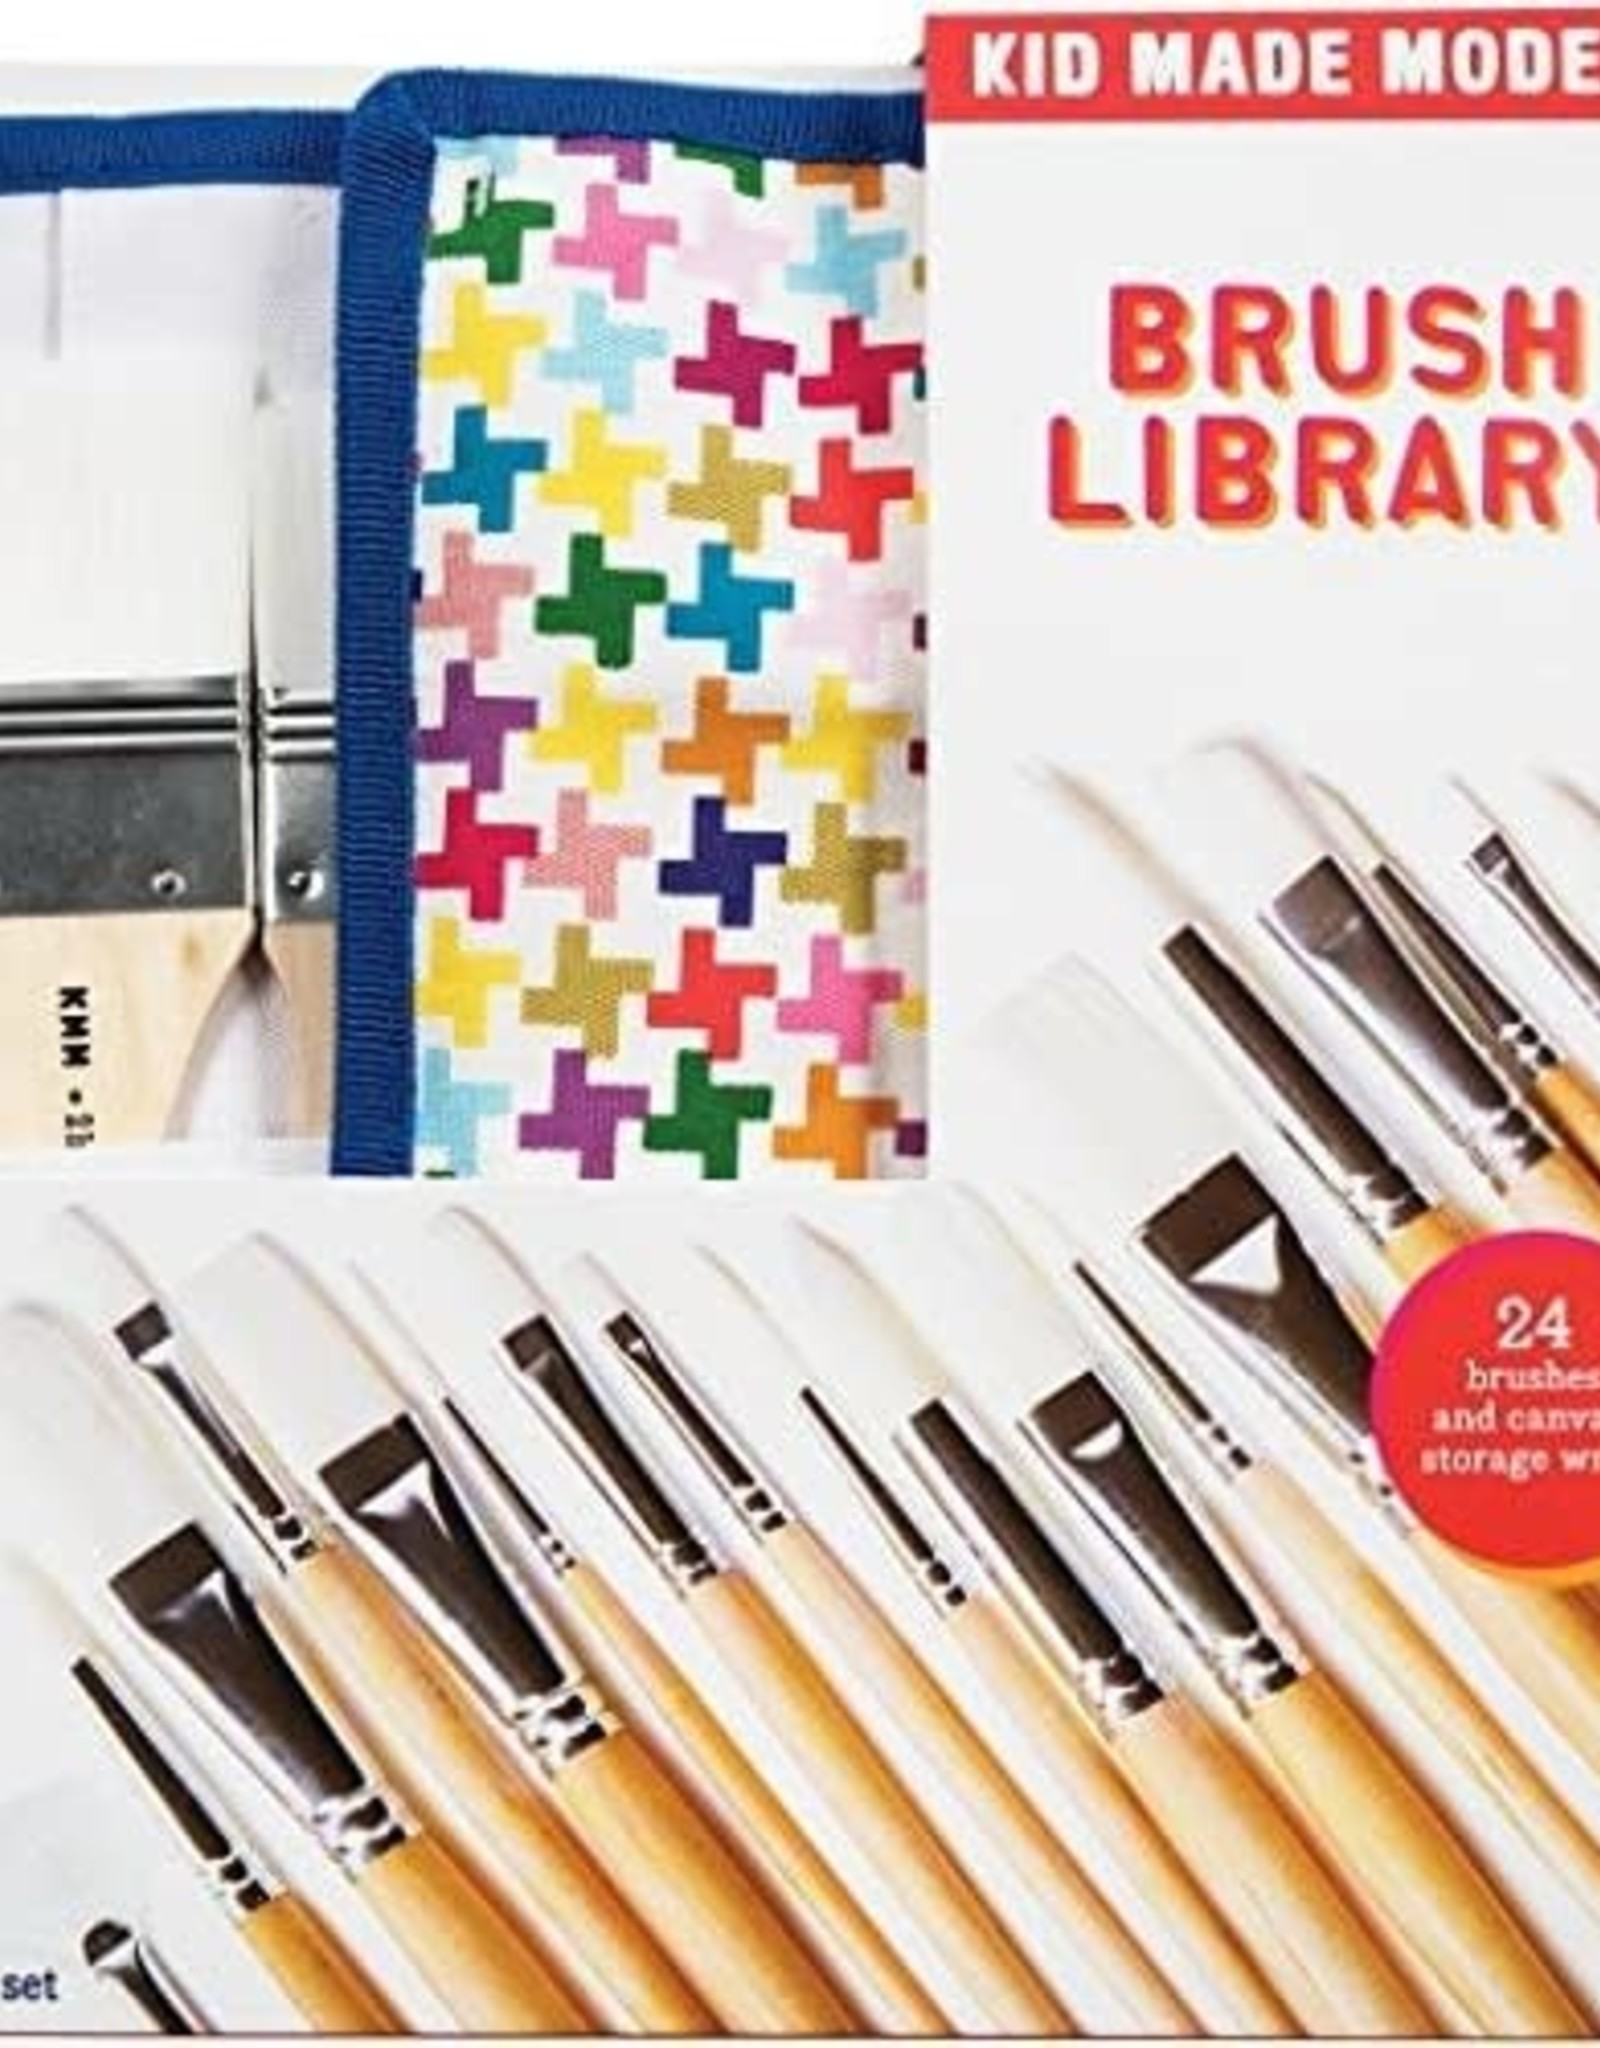 Kid Made Modern Brush Library (24ct)